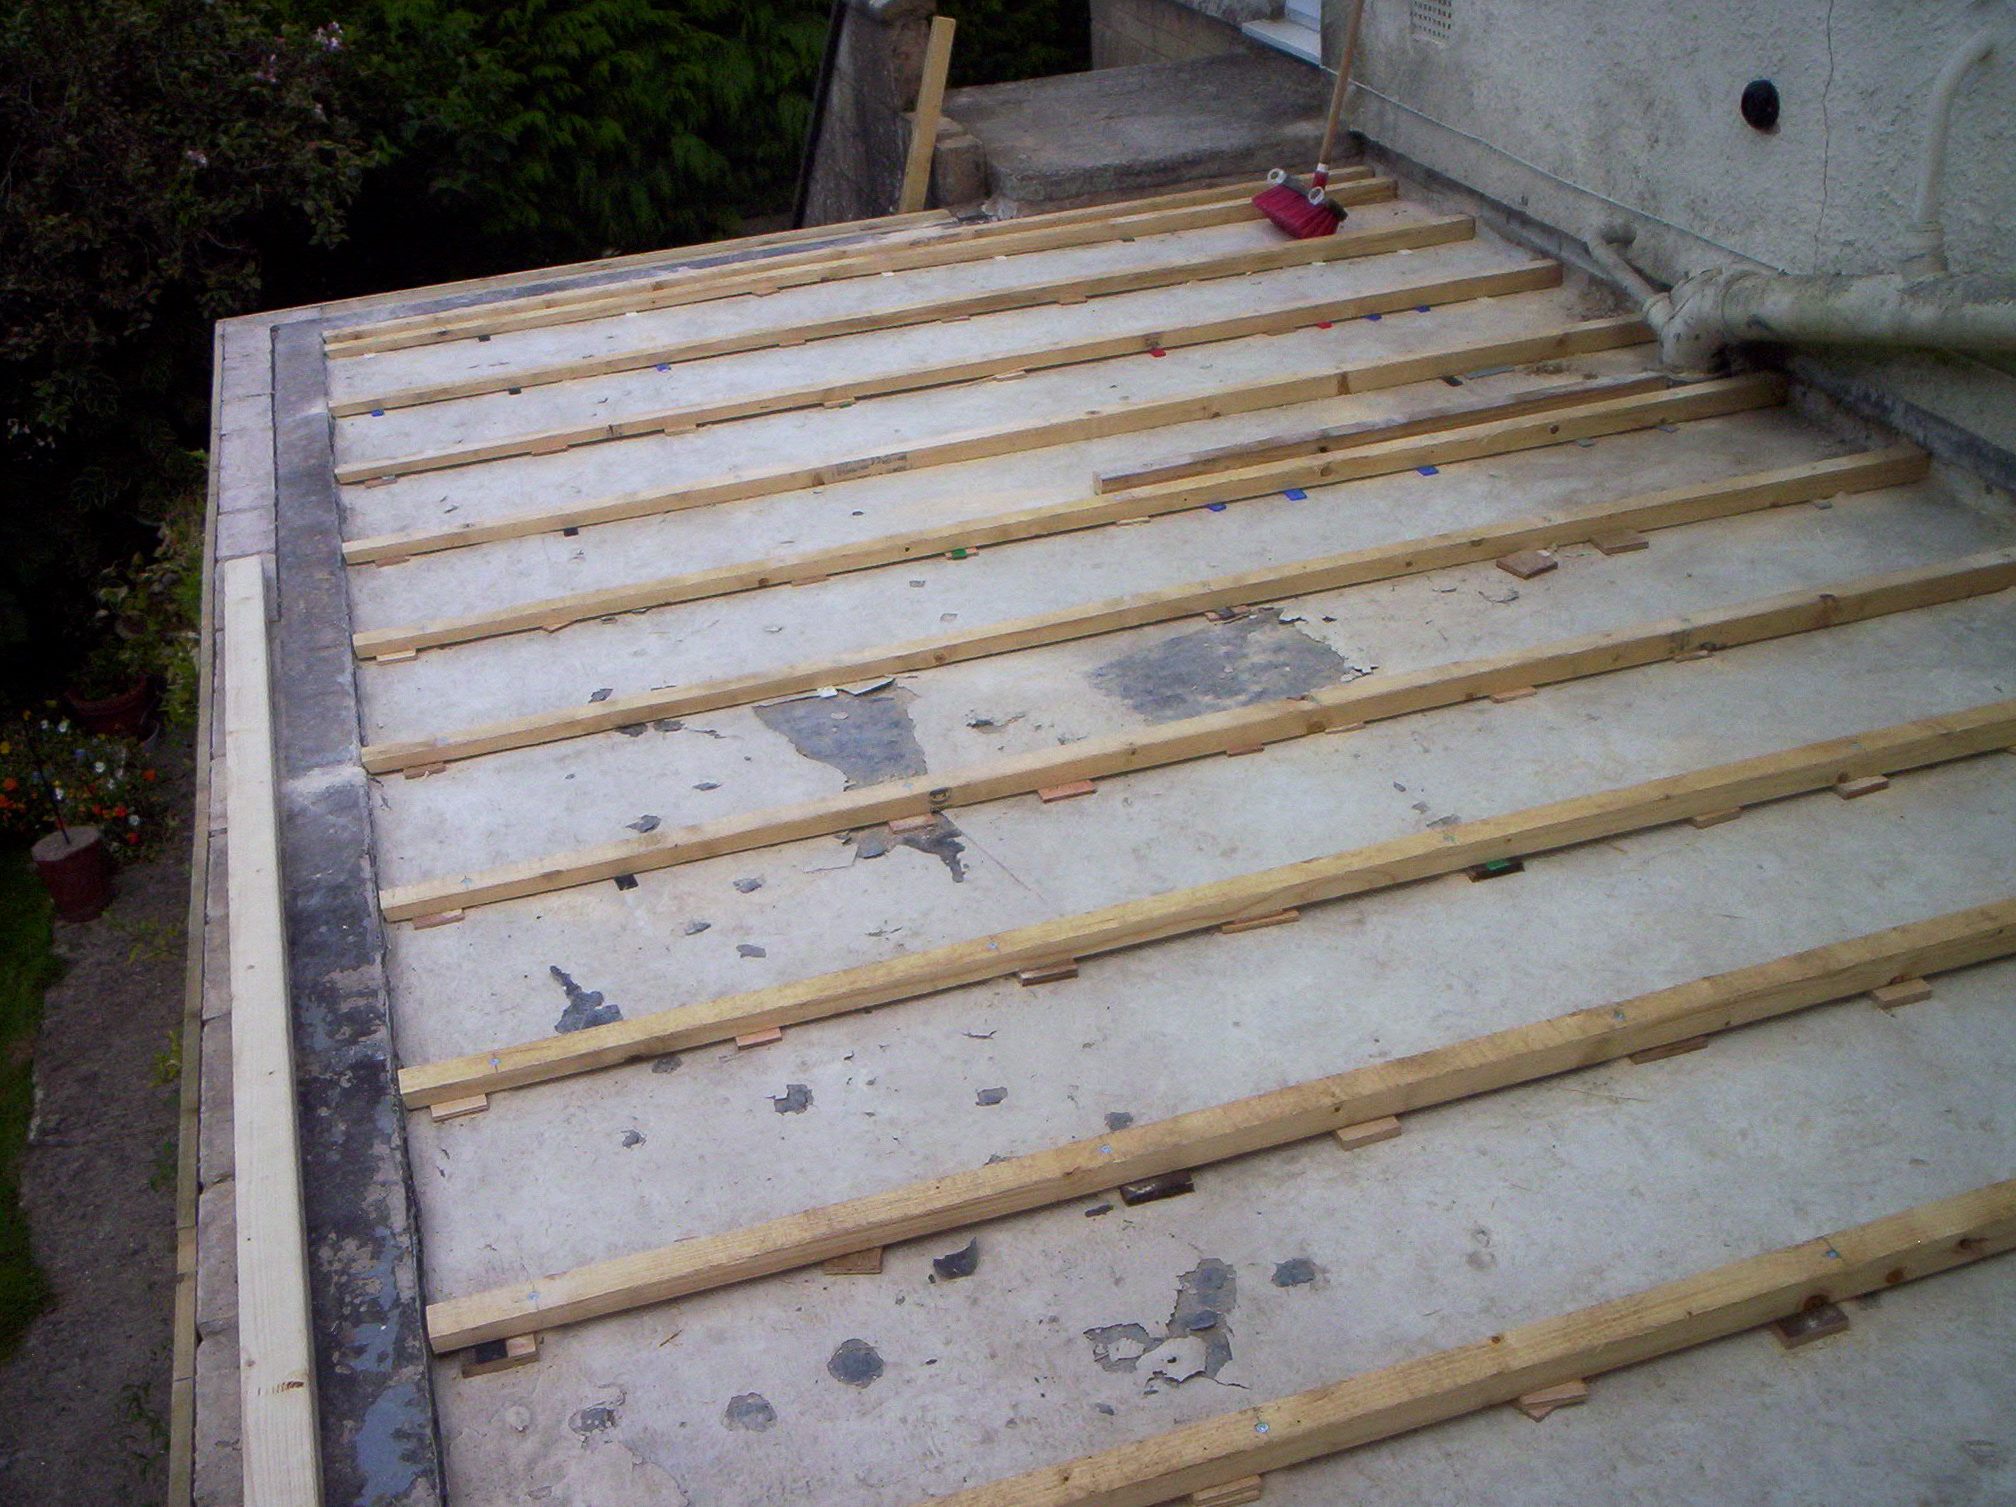 Deck Waterproofing Membrane : Under deck waterproofing membrane home design ideas